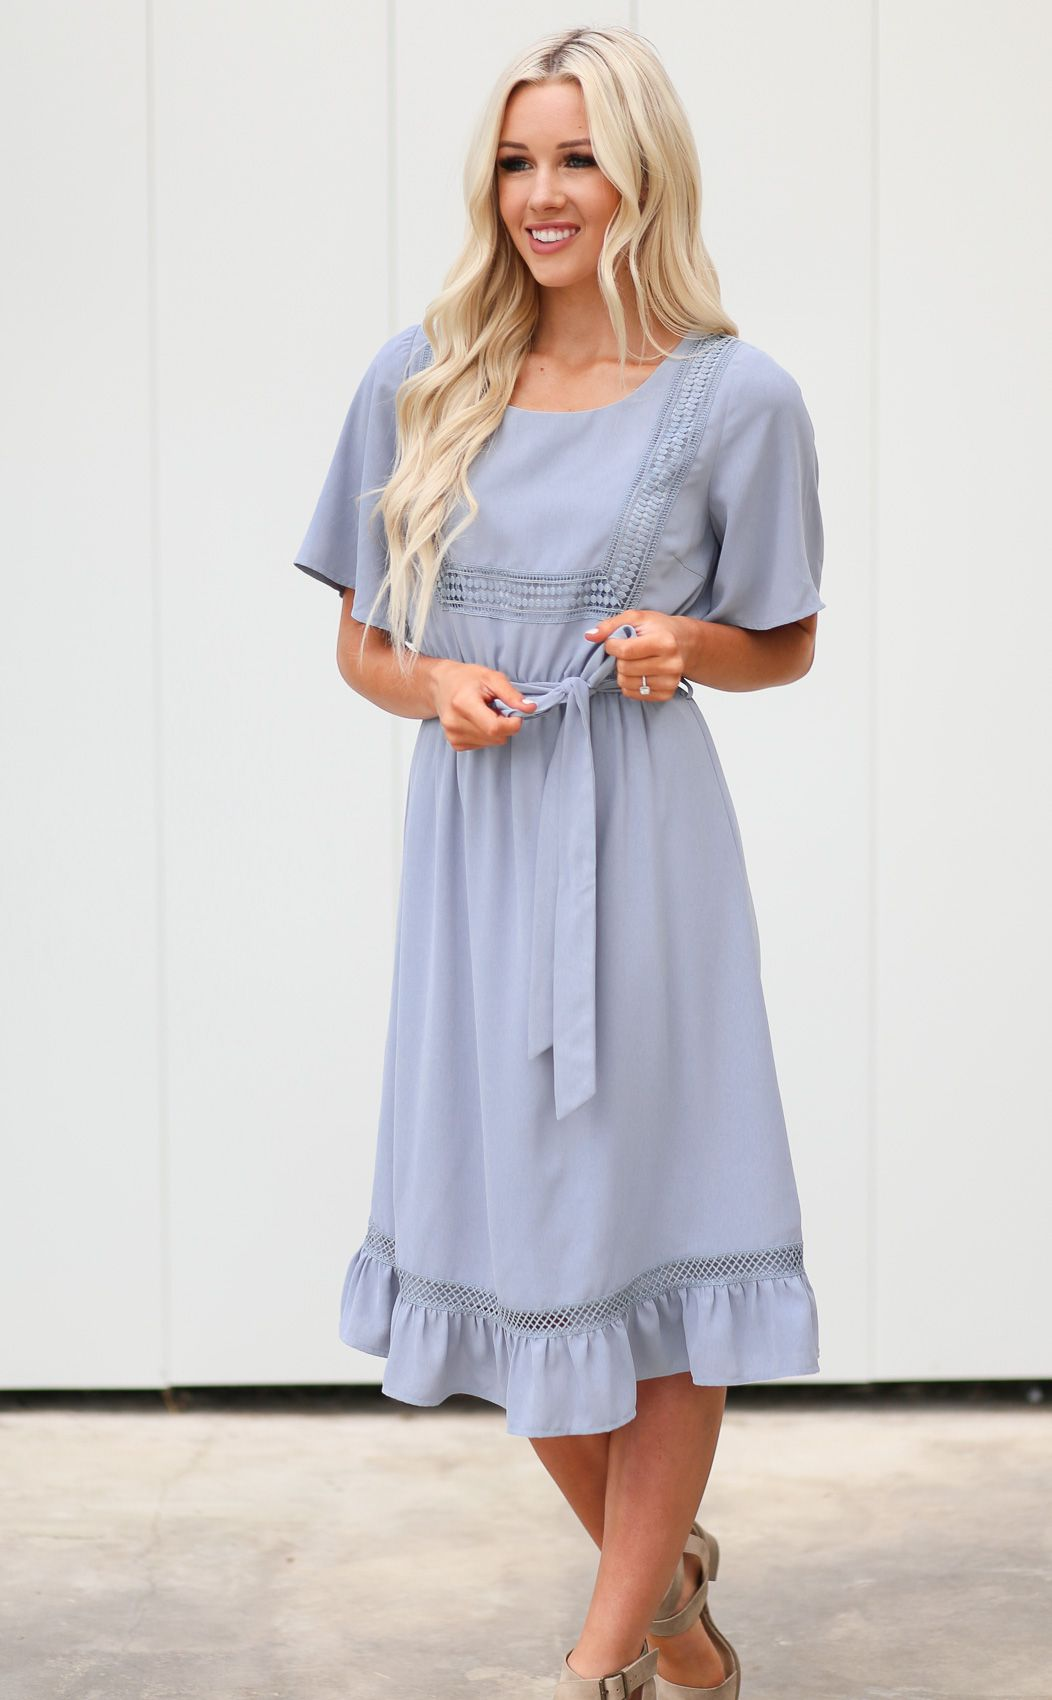 c3db88e7f7048 Skyler Modest Easter Dress or Modest Bridesmaid Dress in Dusty Blue